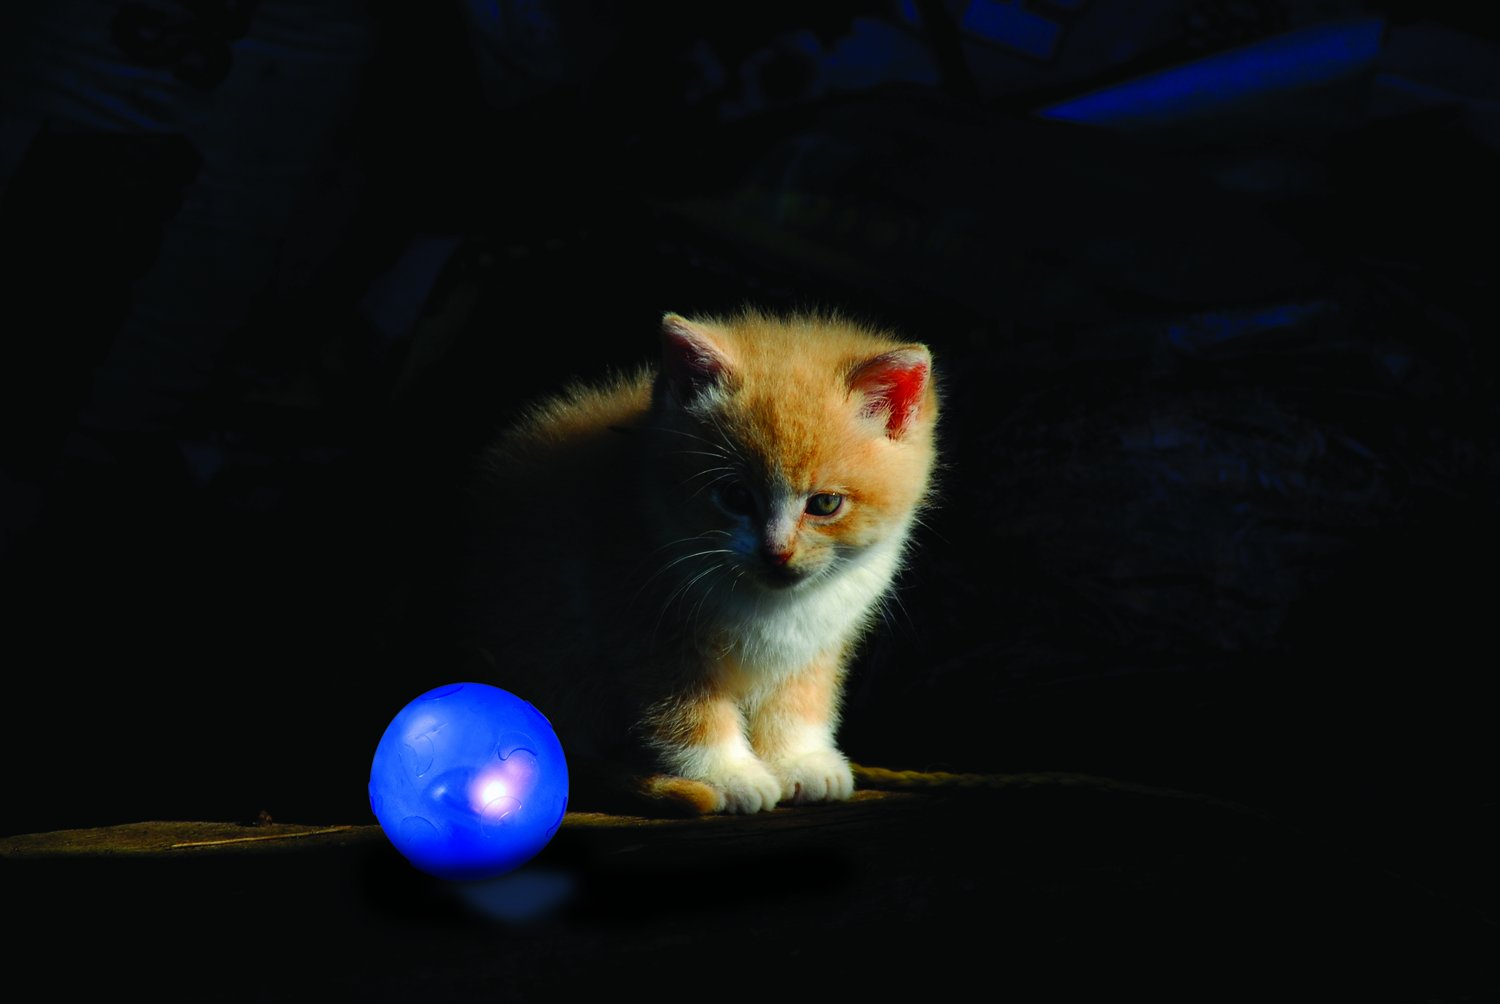 Nighttime Quiet Cat Toy Quiet Glow Twinkle Ball Cat Toy by Petstages